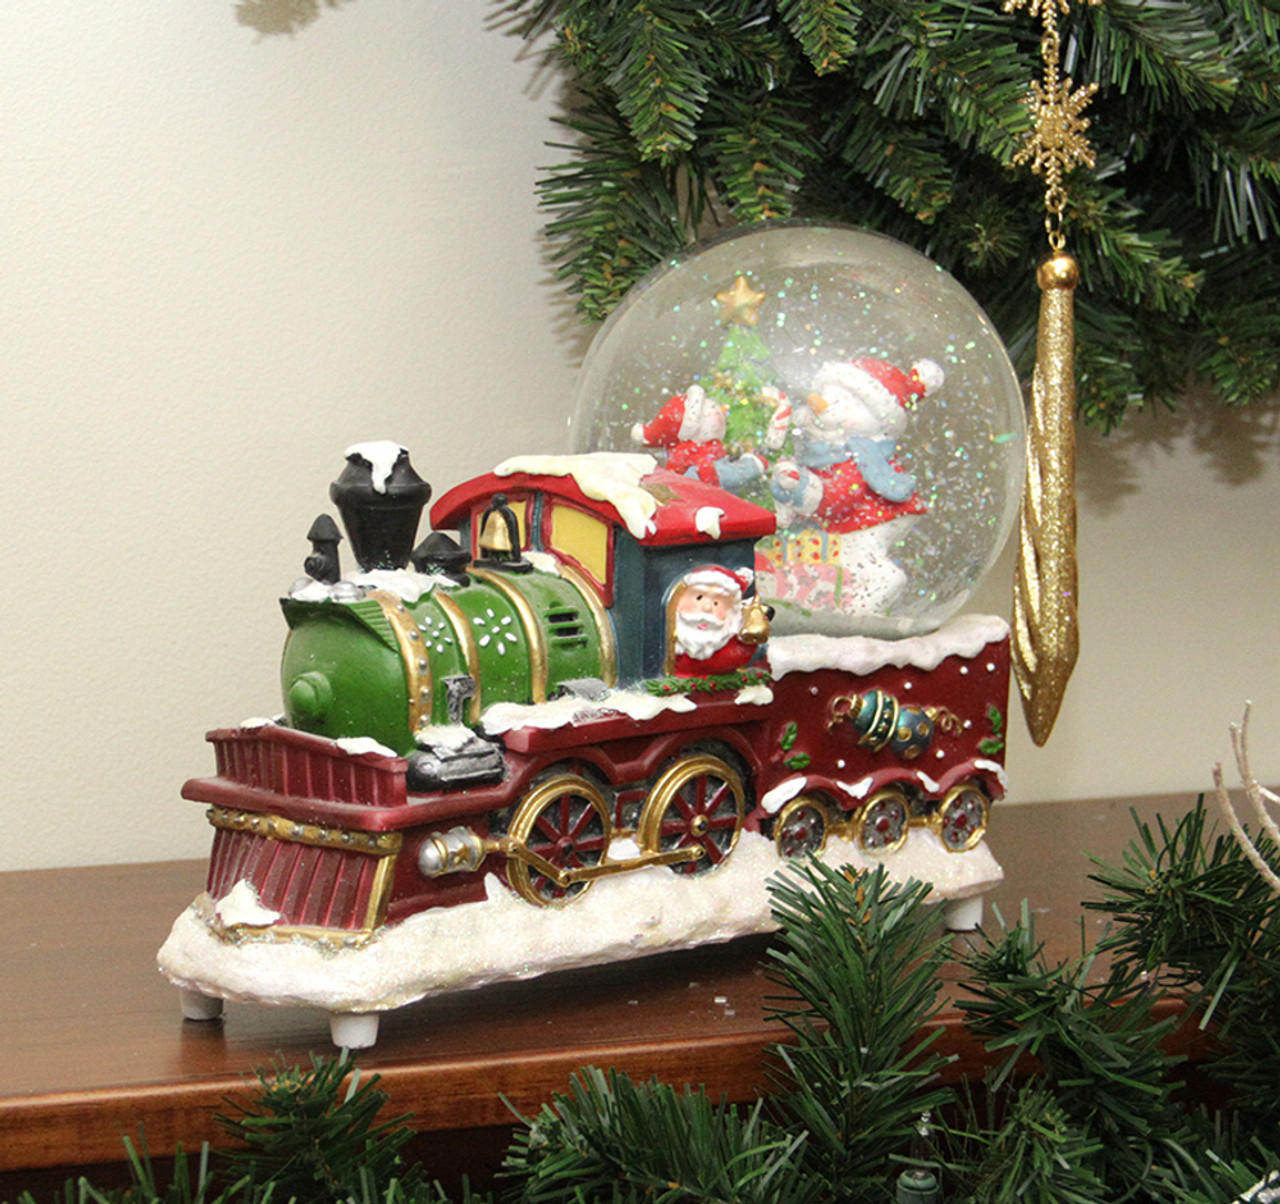 95 santa claus christmas train with snowman scene glitterdome snow globe table top decoration 31465875